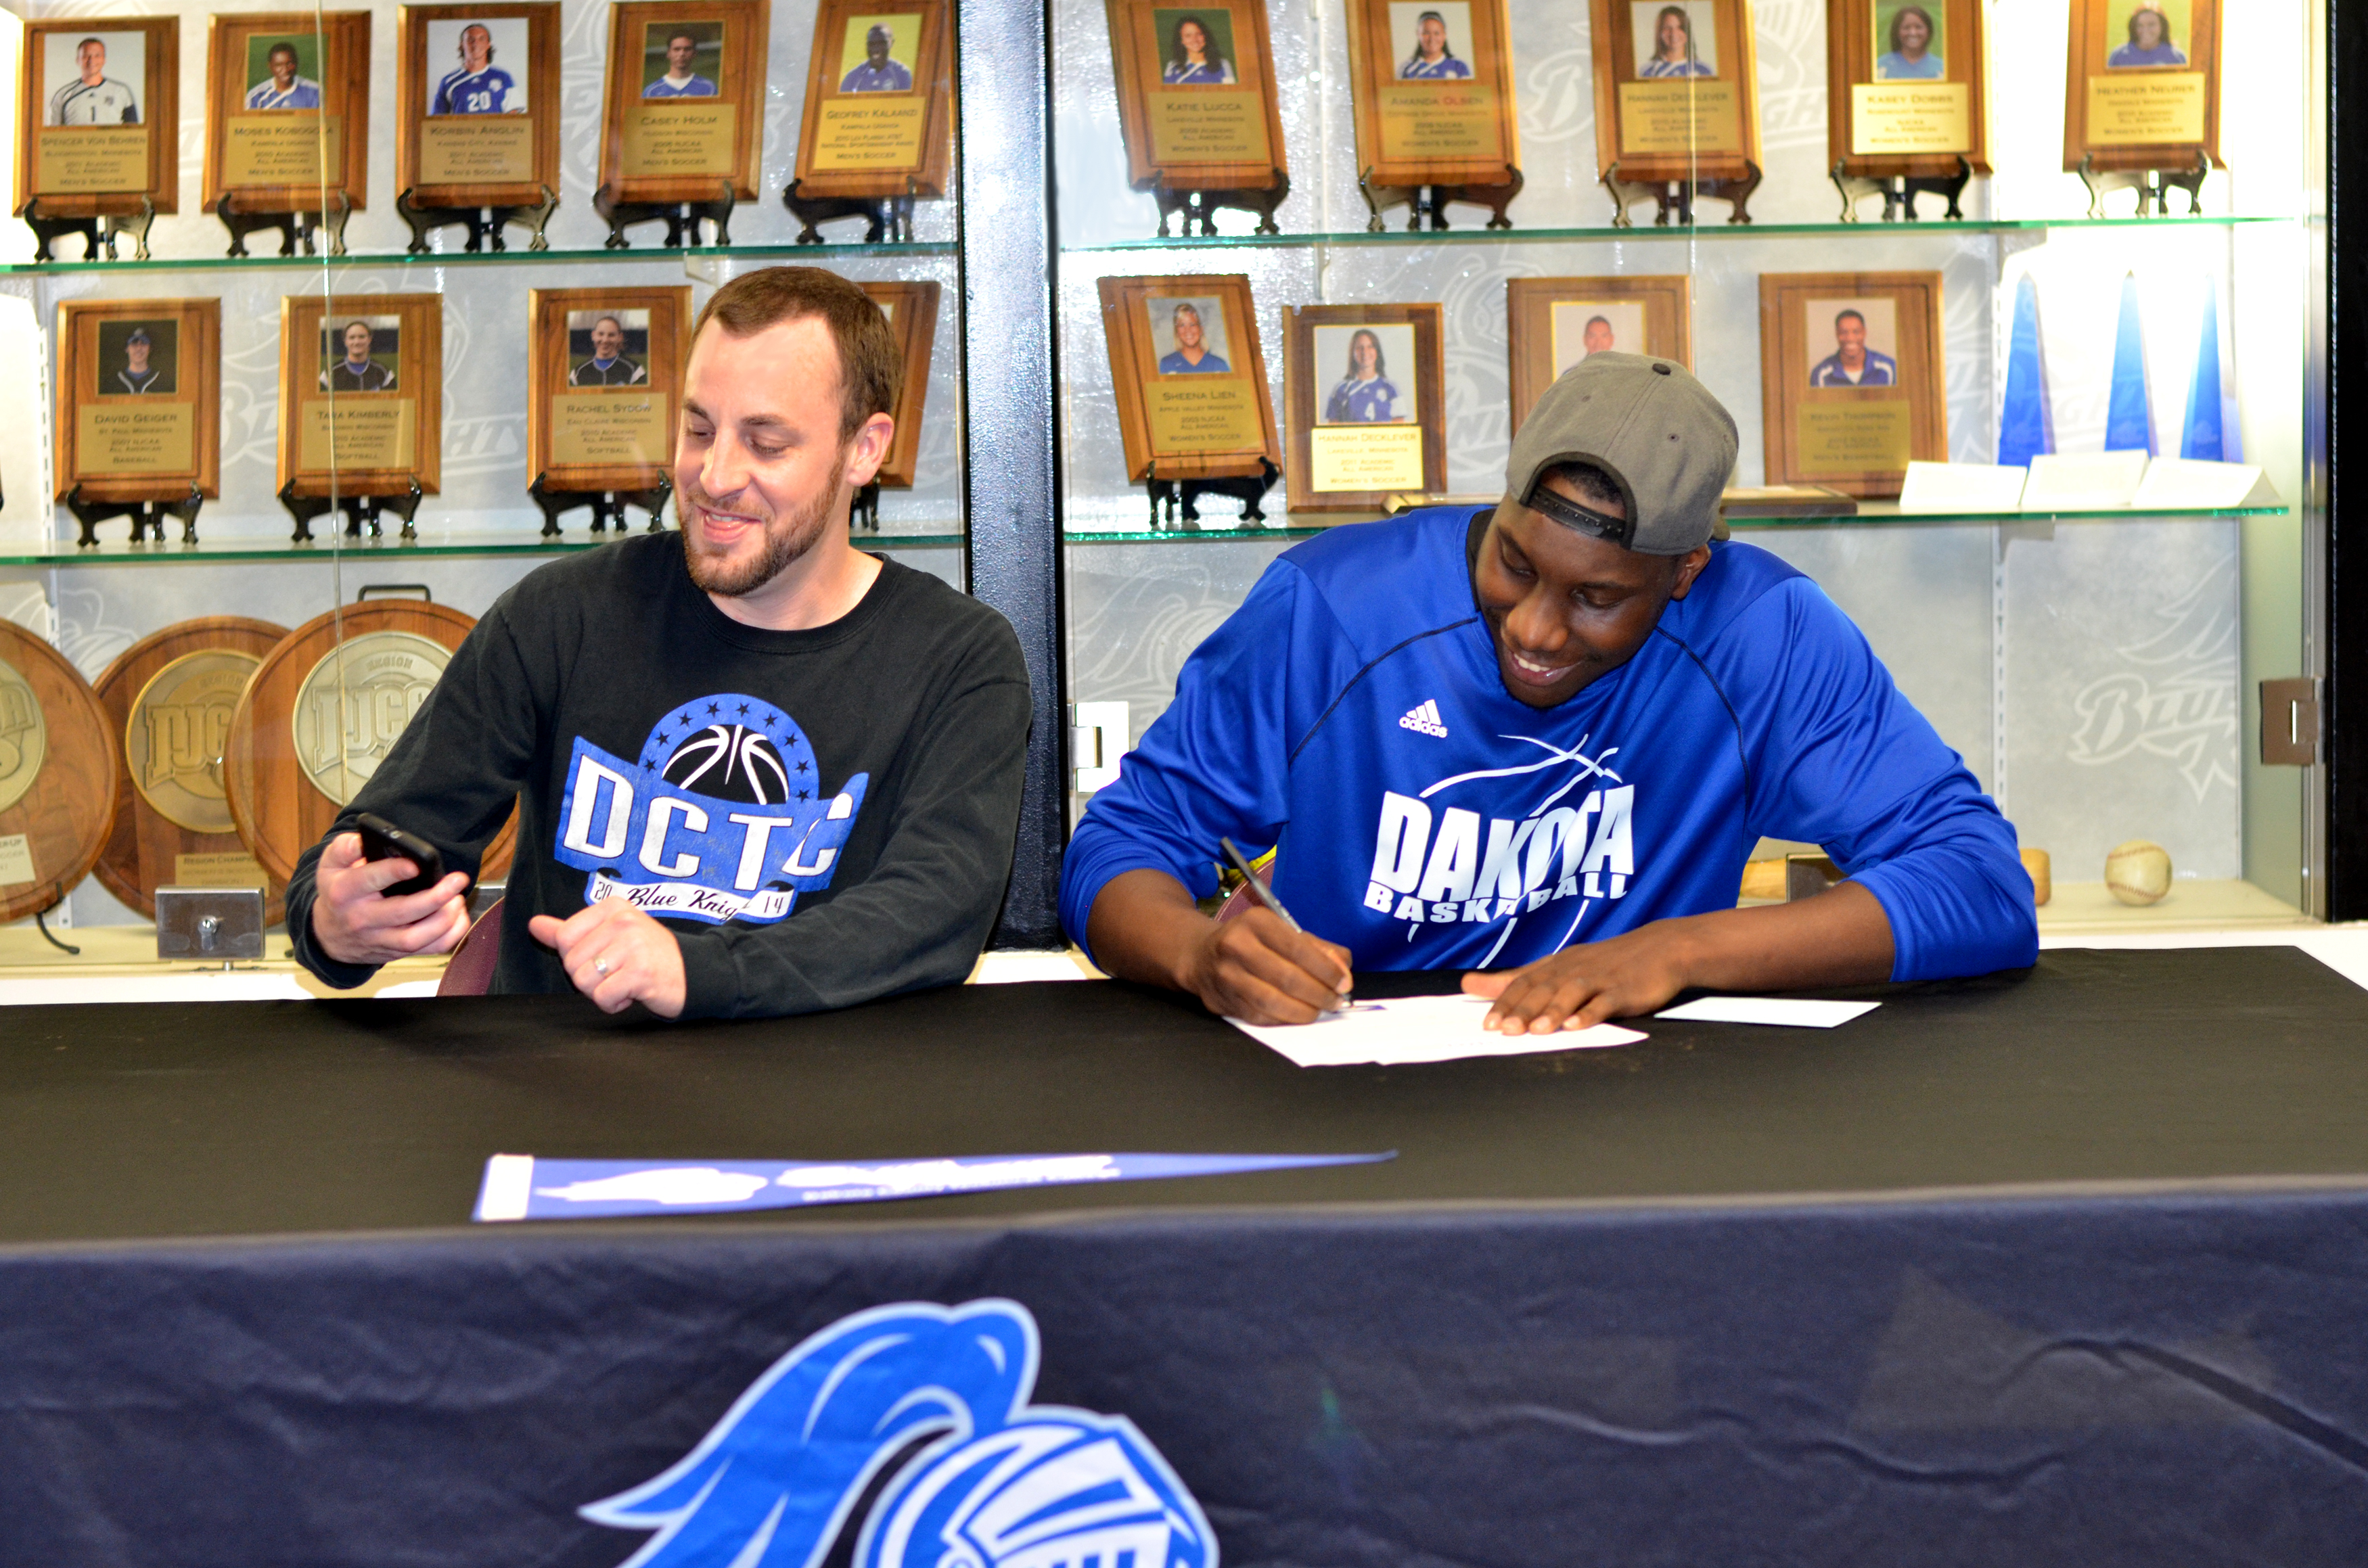 DCTC forward signs letter of intent to play at four-year university